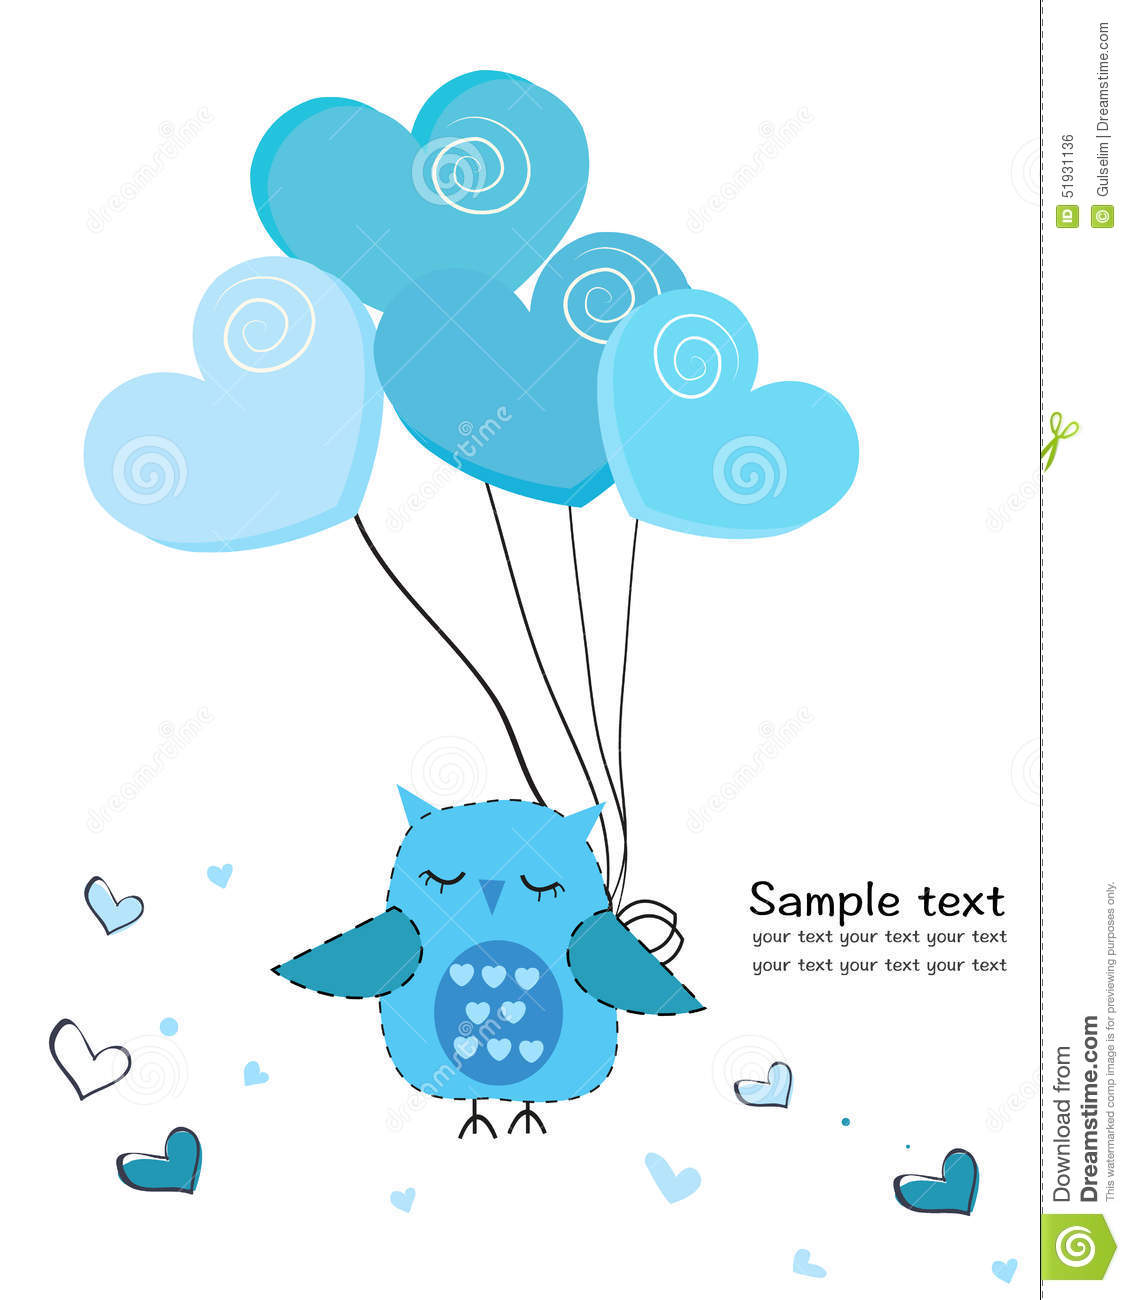 Cute hearts clipart blue transparent stock Cute Owl With Hearts Balloon Greeting Card Stock Illustration ... transparent stock